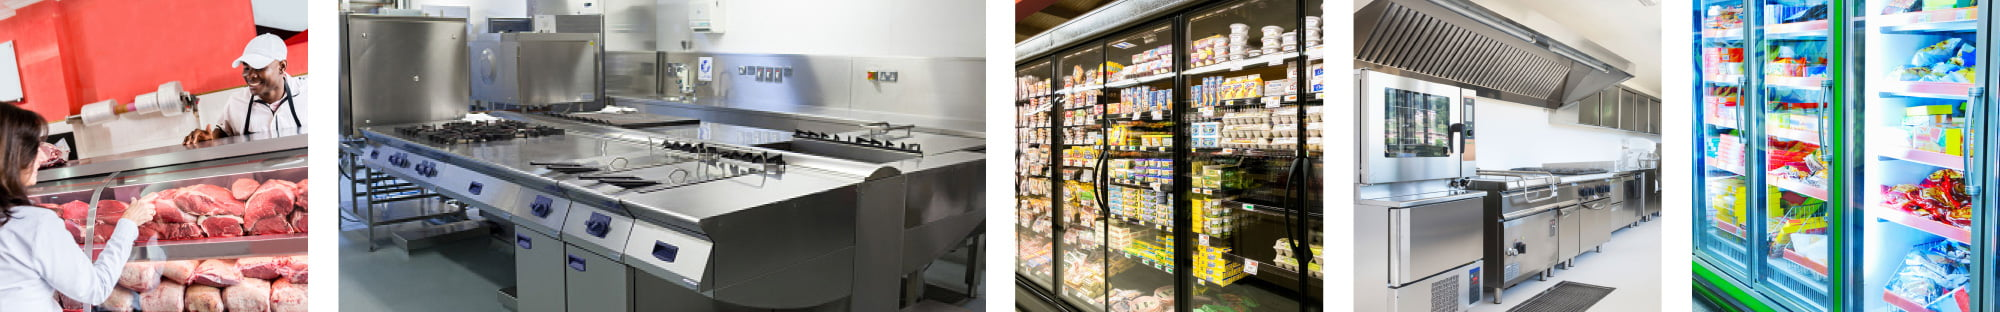 Alexander Food Equipment Group retail experience